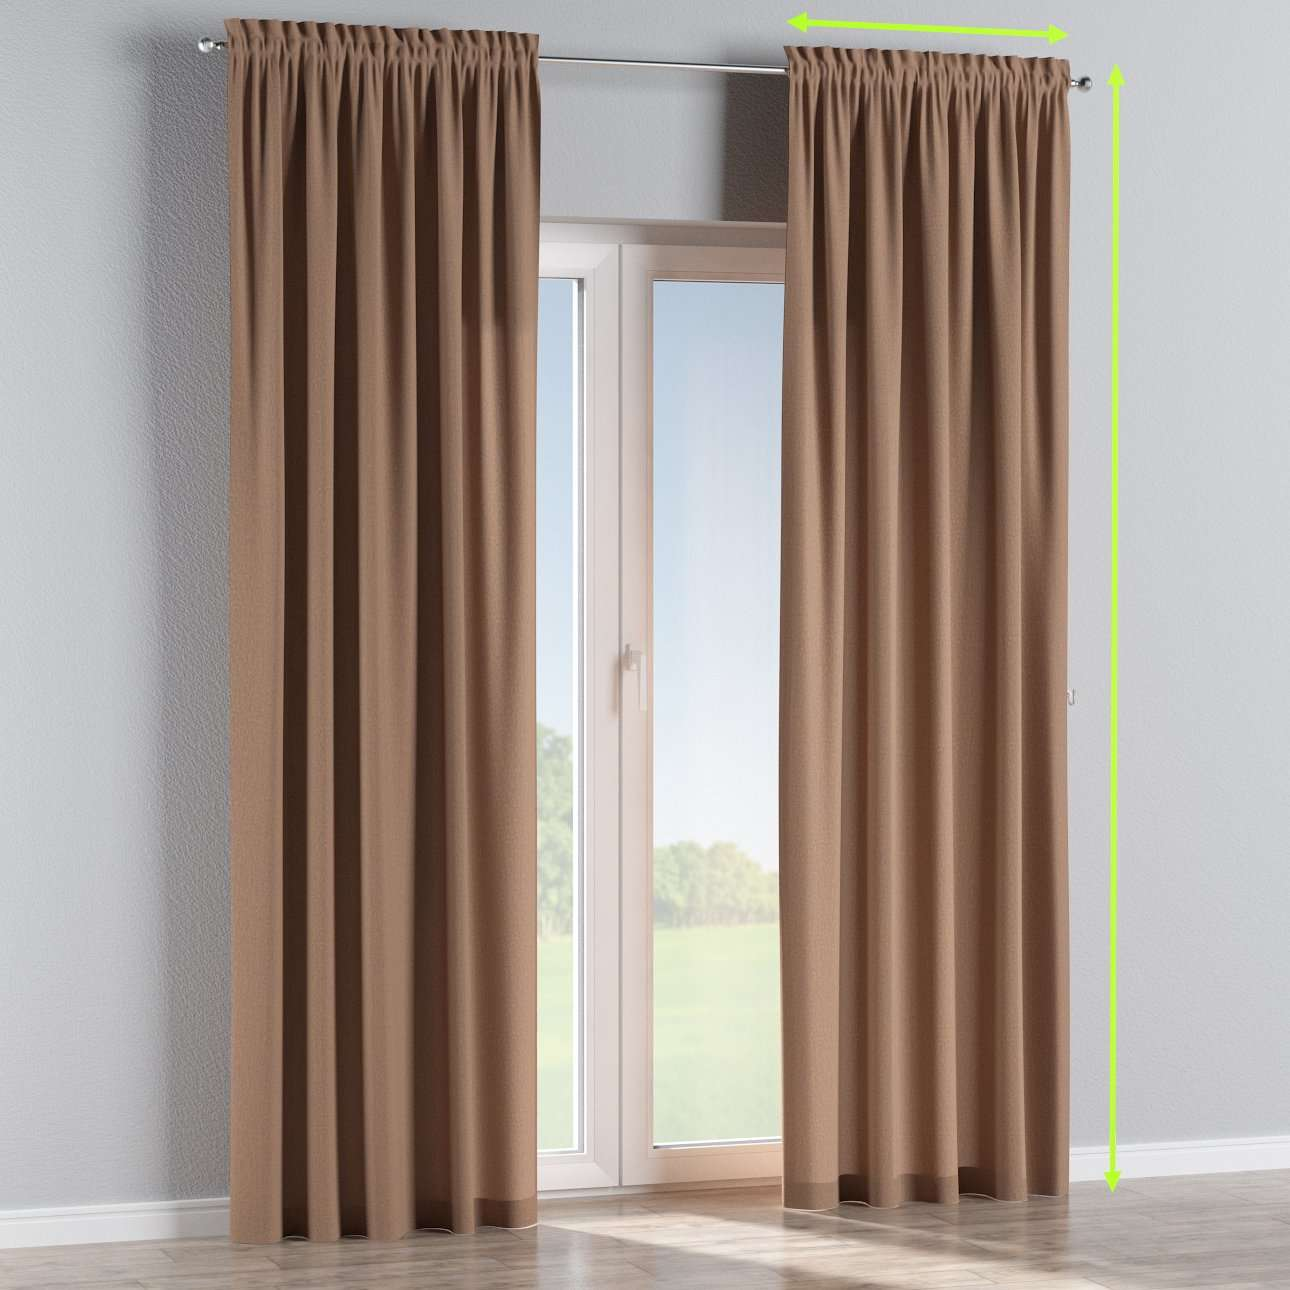 Slot and frill curtains in collection Chenille, fabric: 702-21